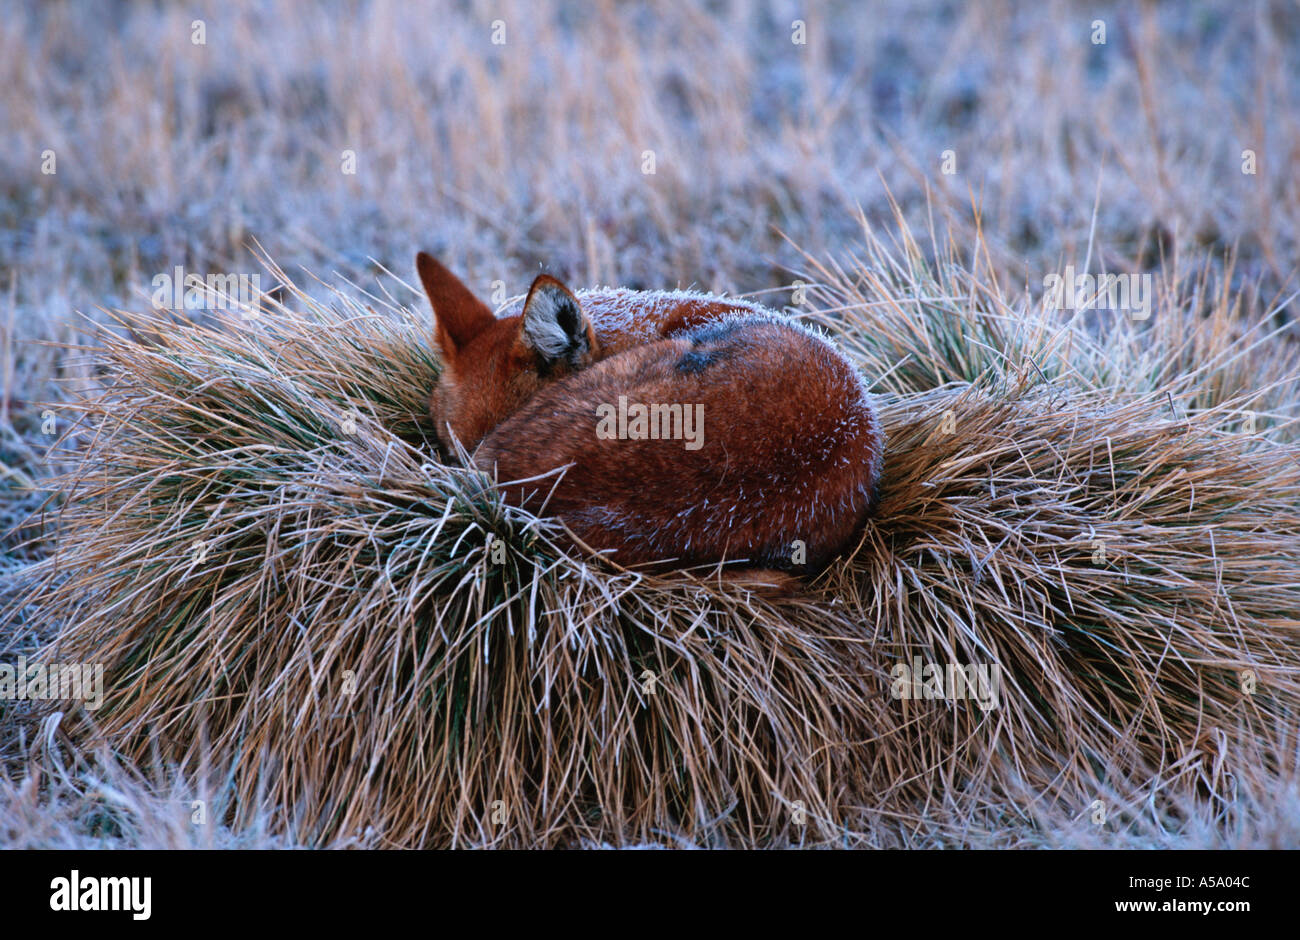 Ethiopian Wolf Canis simensis Sleeping covered by early morning frost endangered Bale Mountains National Park Ethiopia - Stock Image